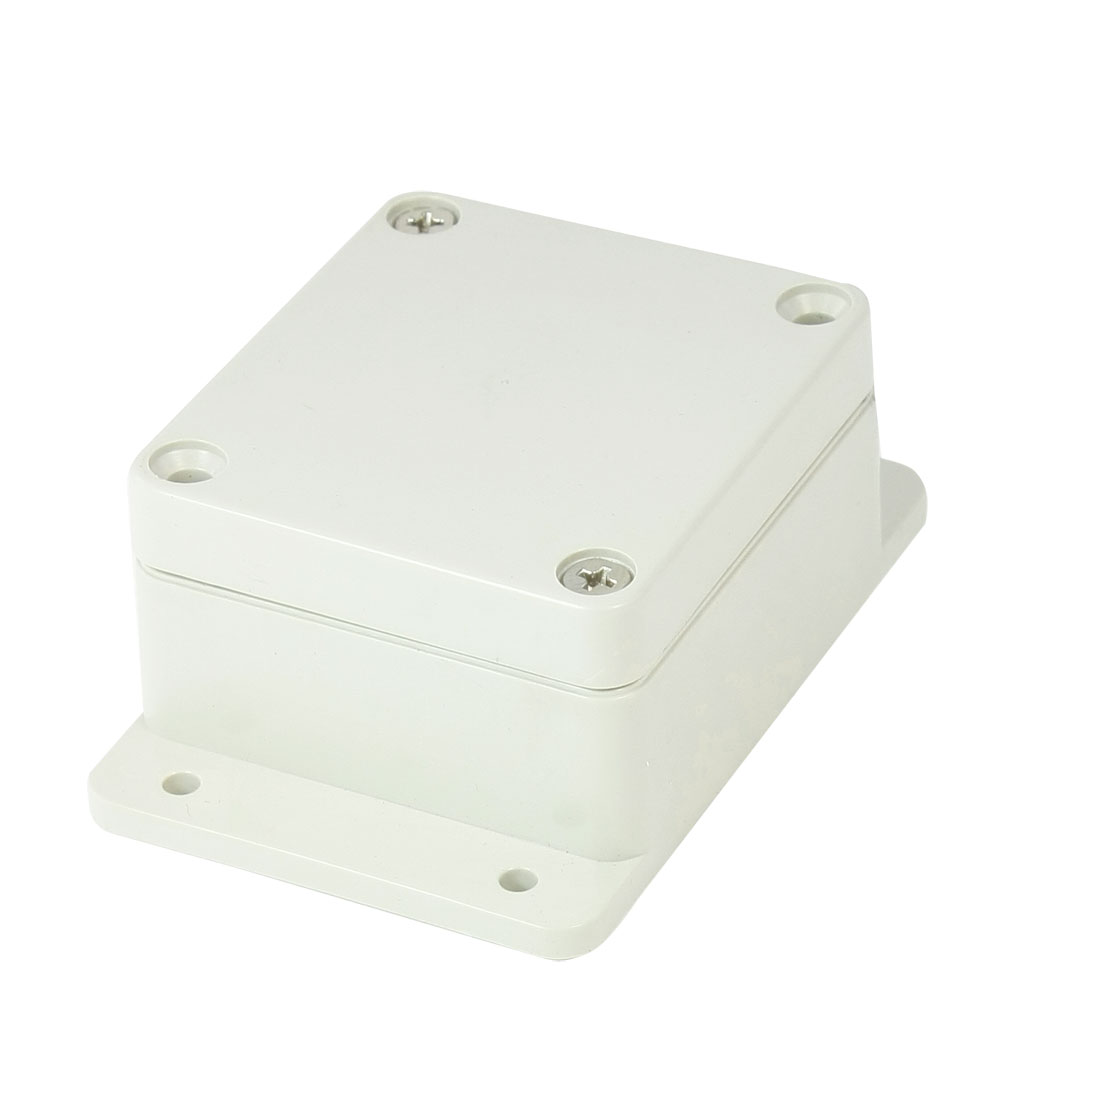 64mm x 58mm x 34mm Plastic Enclosure Case DIY Junction Box